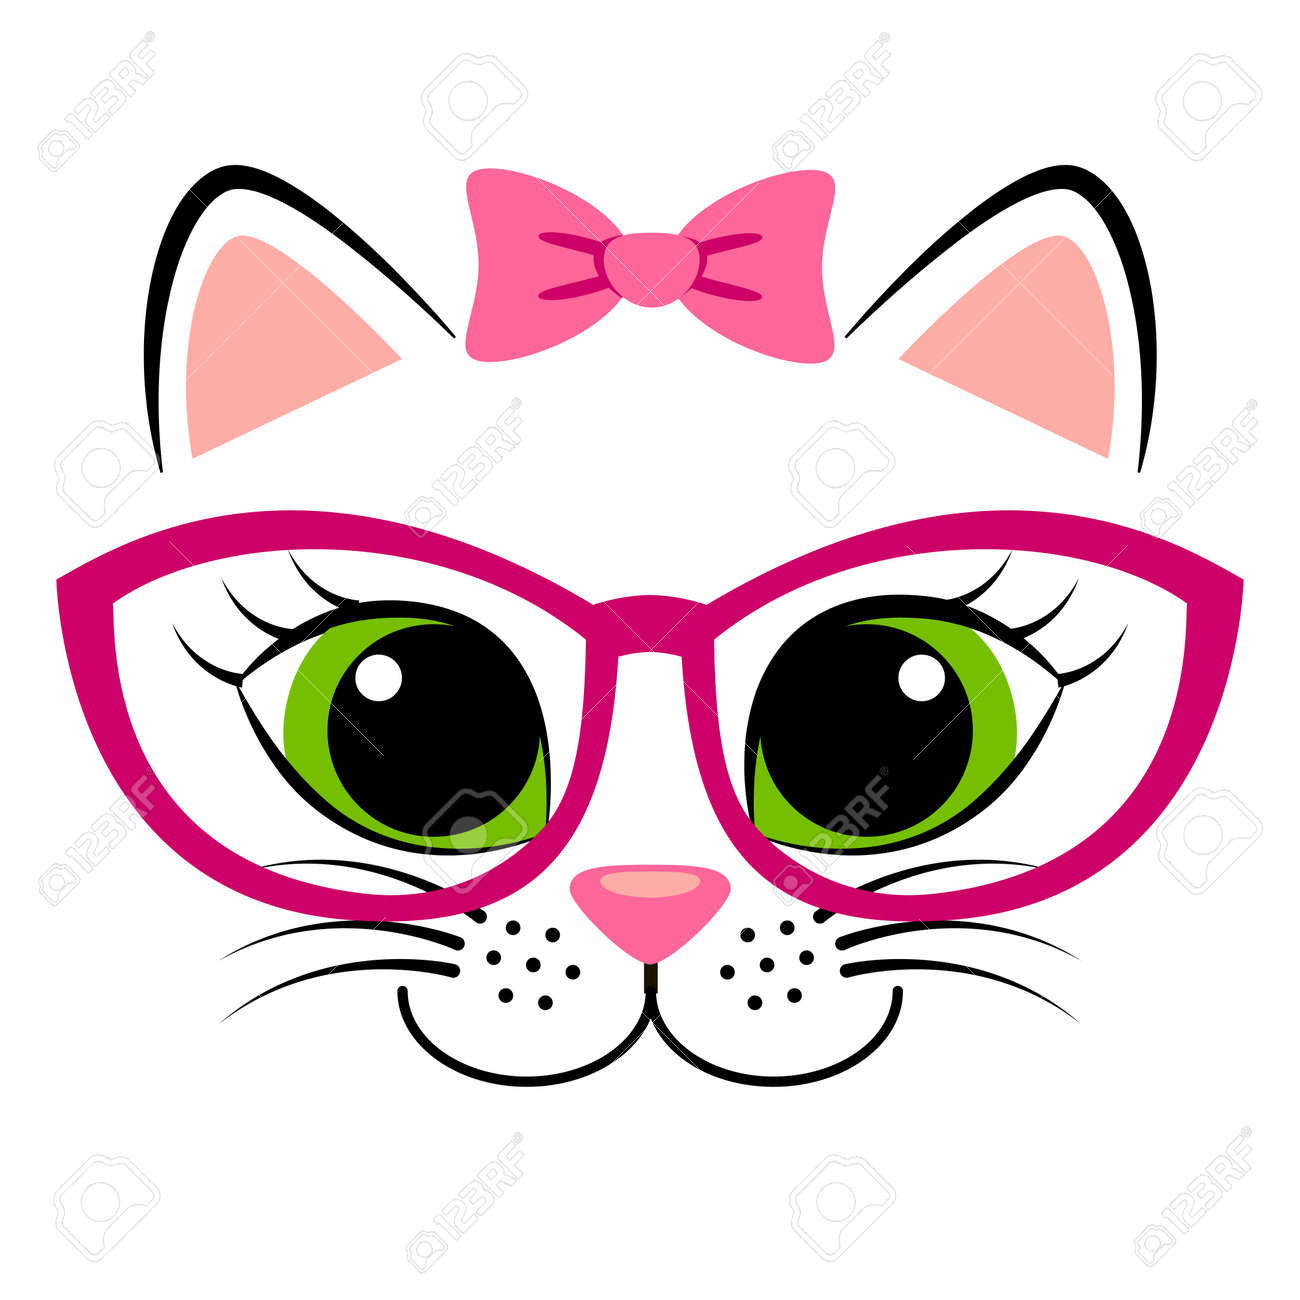 Cute white kitten with pink bow and glasses. Girlish print with kitty for t-shirt - 70953019